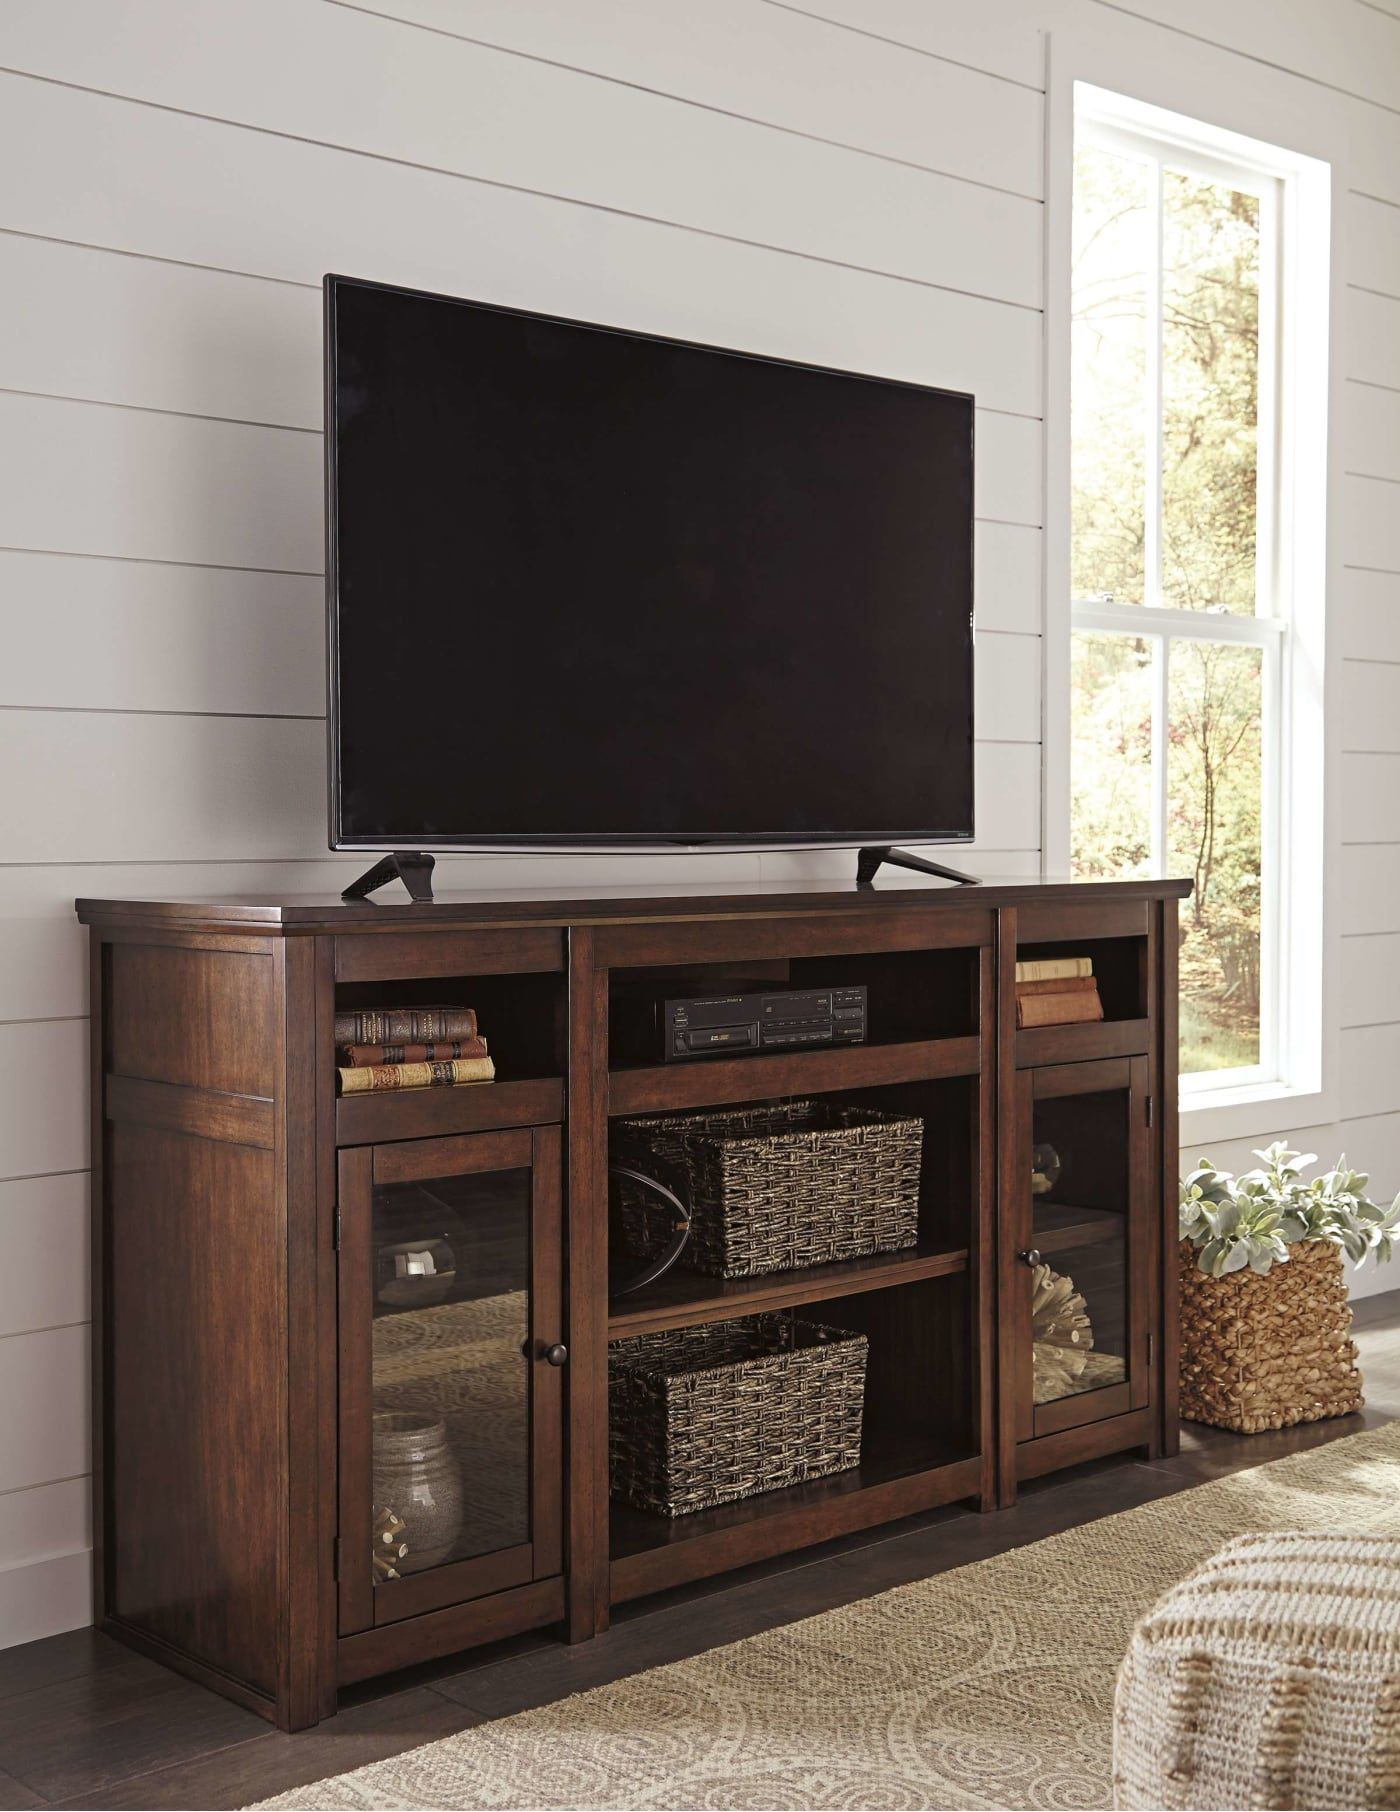 tv stands for sale on signature design by ashley harpan reddish brown 72 extra large tv stand with fireplace option w797 68 goedekers com large tv stands fireplace tv stand entertainment unit tv stand with fireplace option w797 68